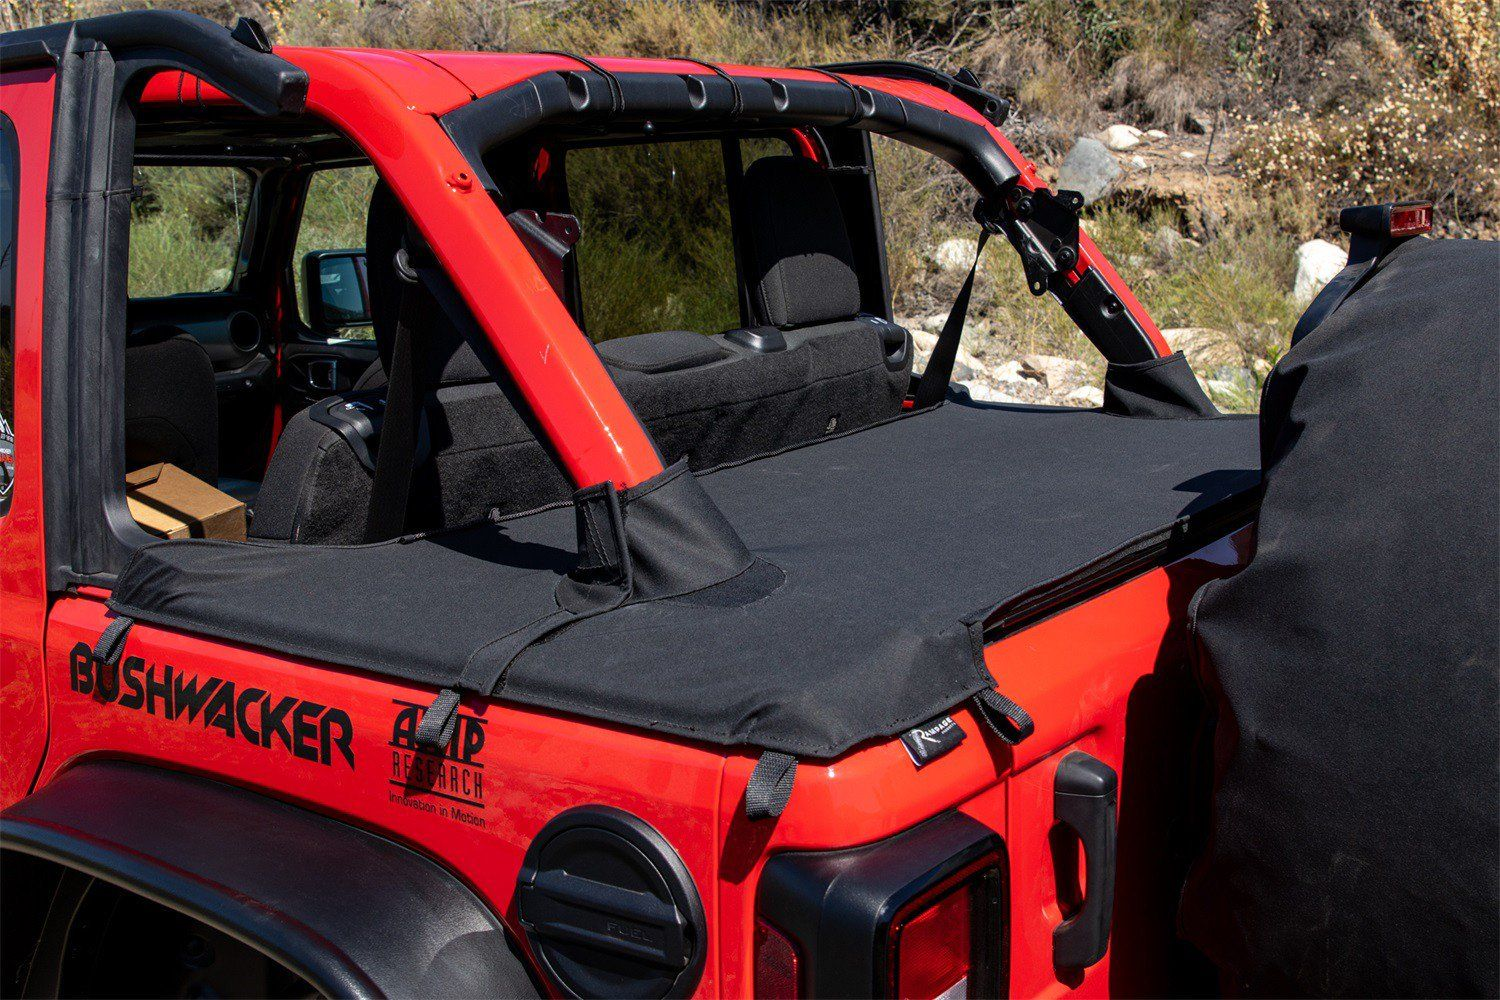 Rampage Tonneau Cover For 2018 2020 Jeep Wrangler Jl Unlimited 4 Door Jeep Wrangler Unlimited Accessories Jeep Wrangler Accessories Wrangler Jl